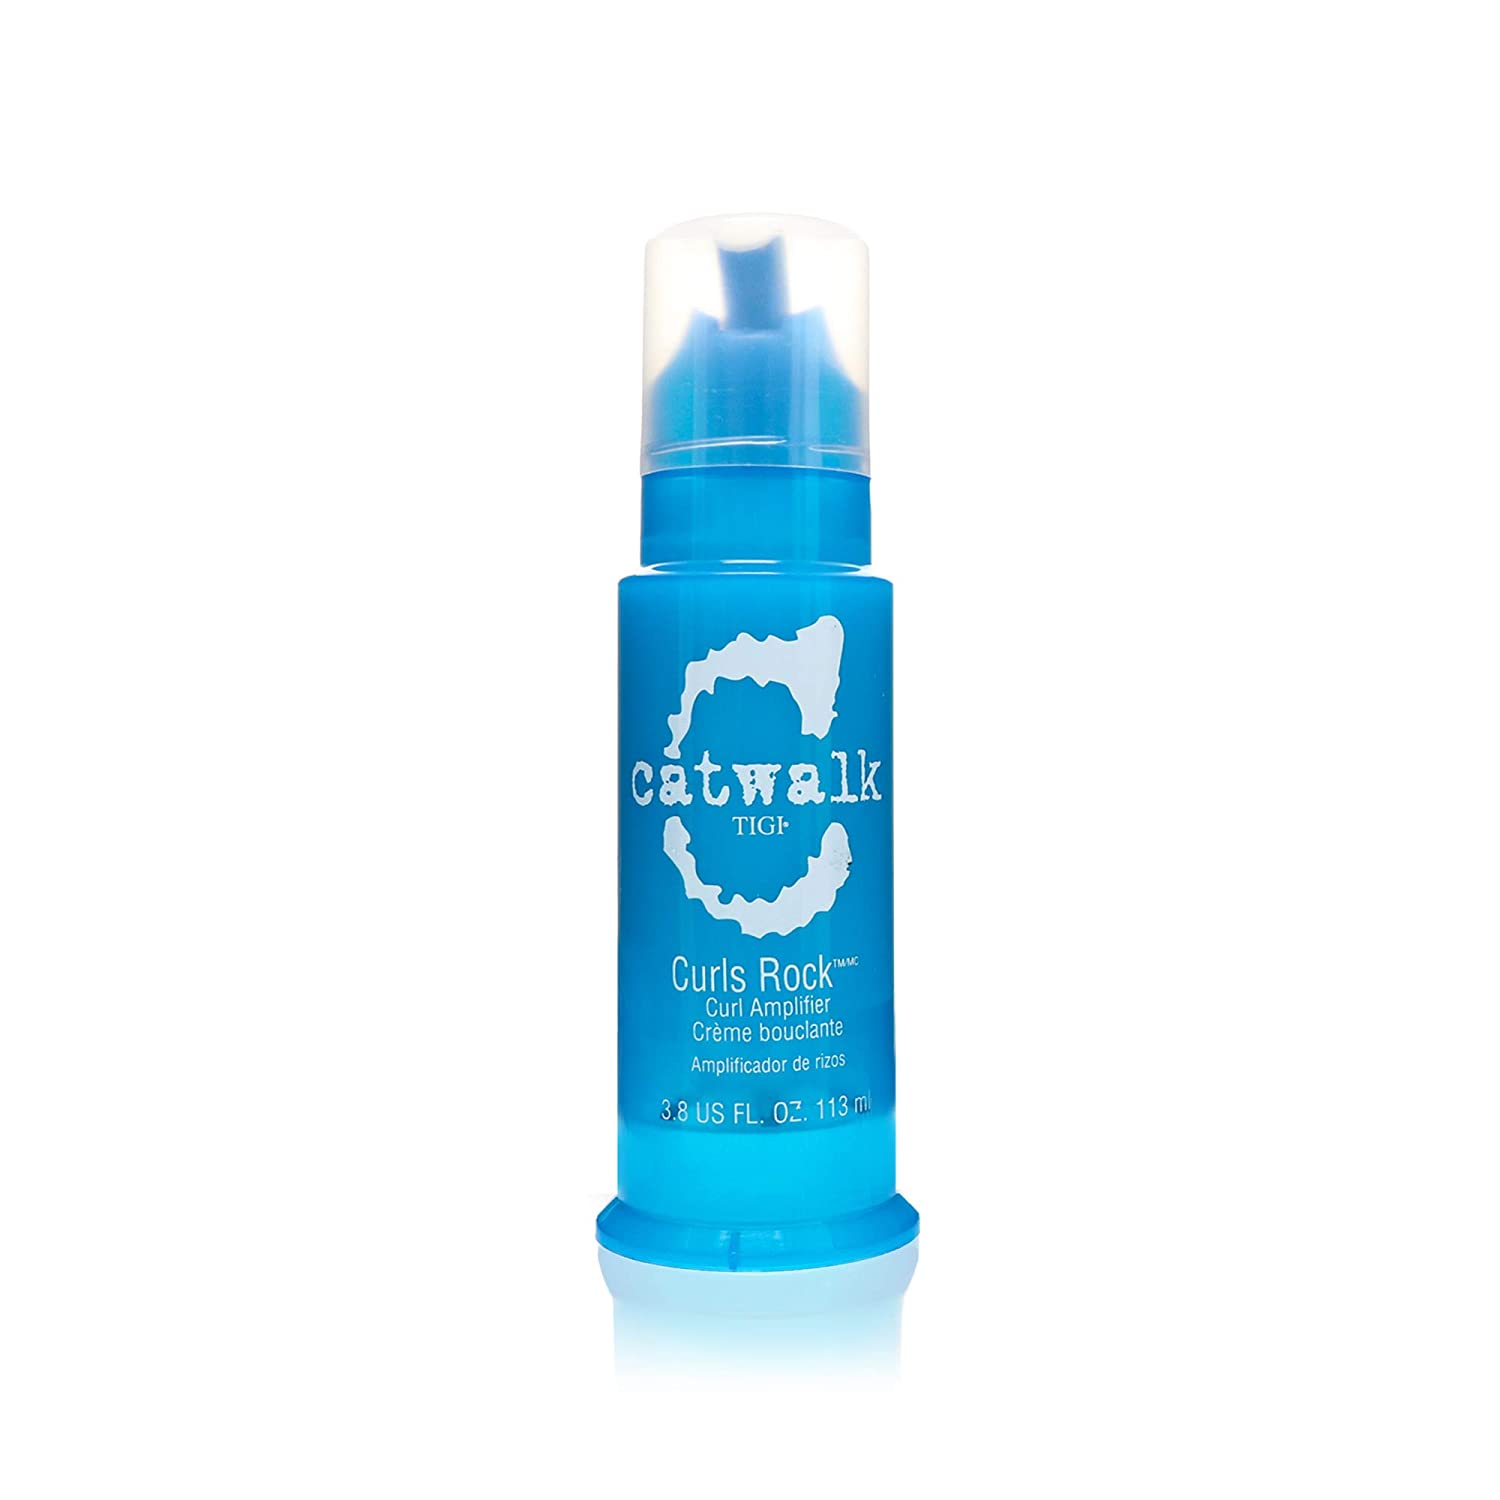 TIGI Catwalk Curls Rock Amplifier - For Defined Curls & Waves, Adds Volume & Shine, Enhances Natural Texture, Provides Hold & Control, Humidity & Heat Protection, with Essential Oils 4 oz (Pack of 1)